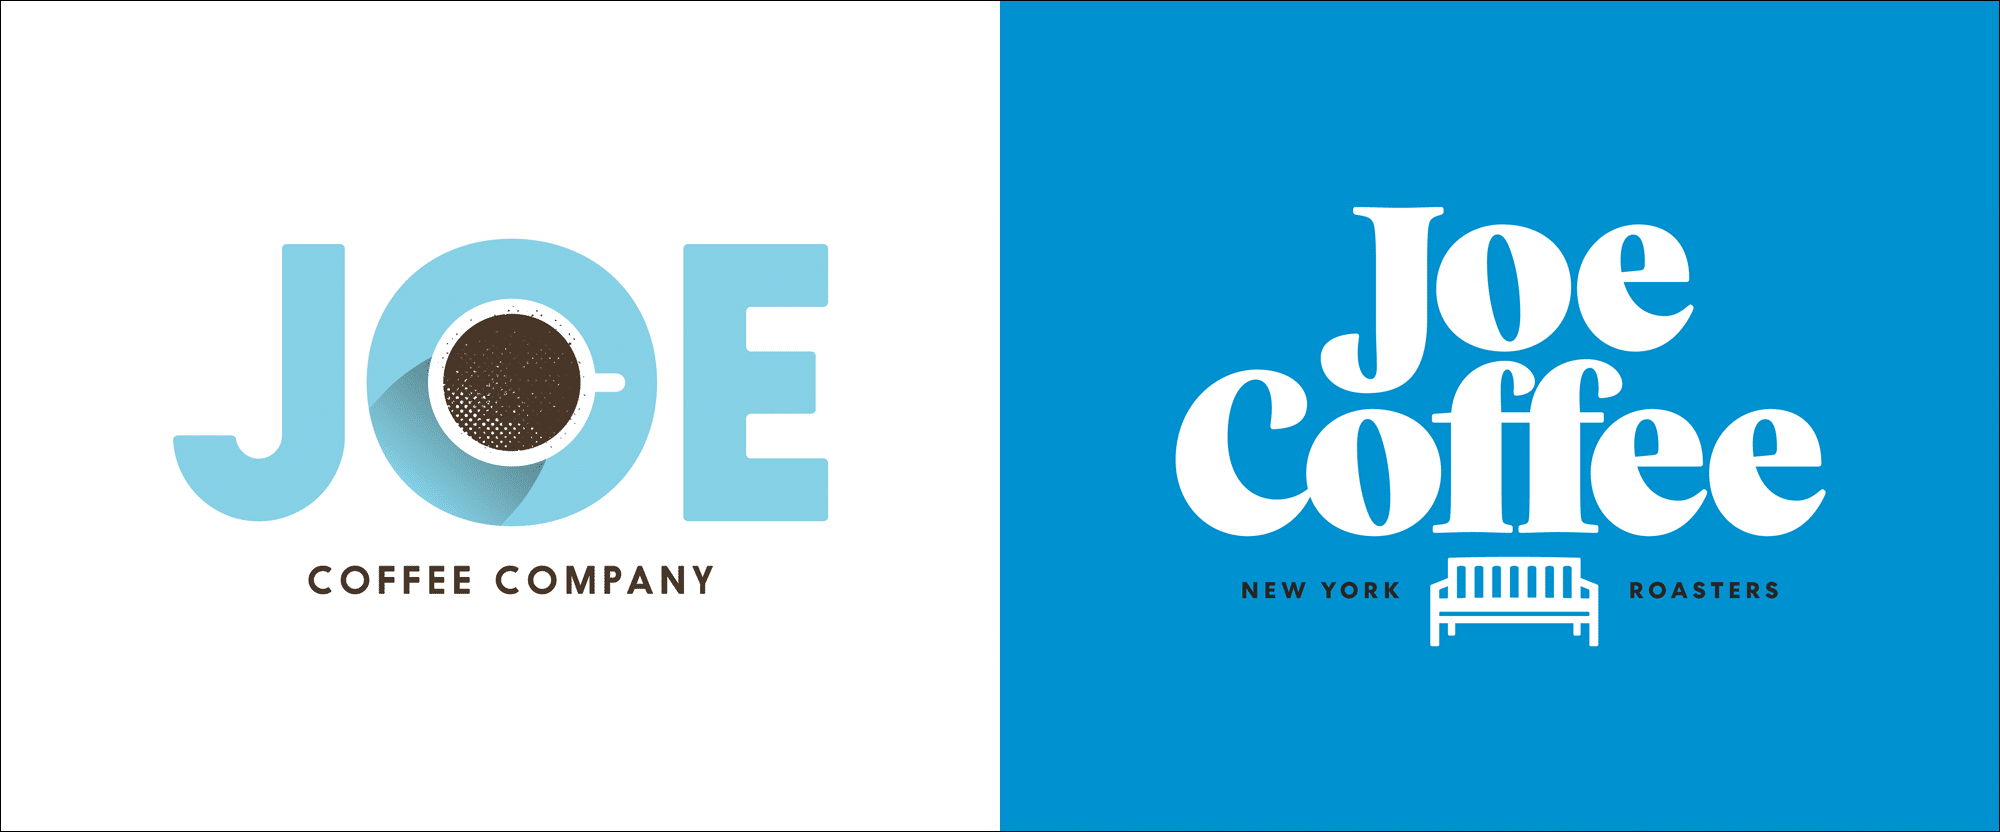 comparing old and new logo